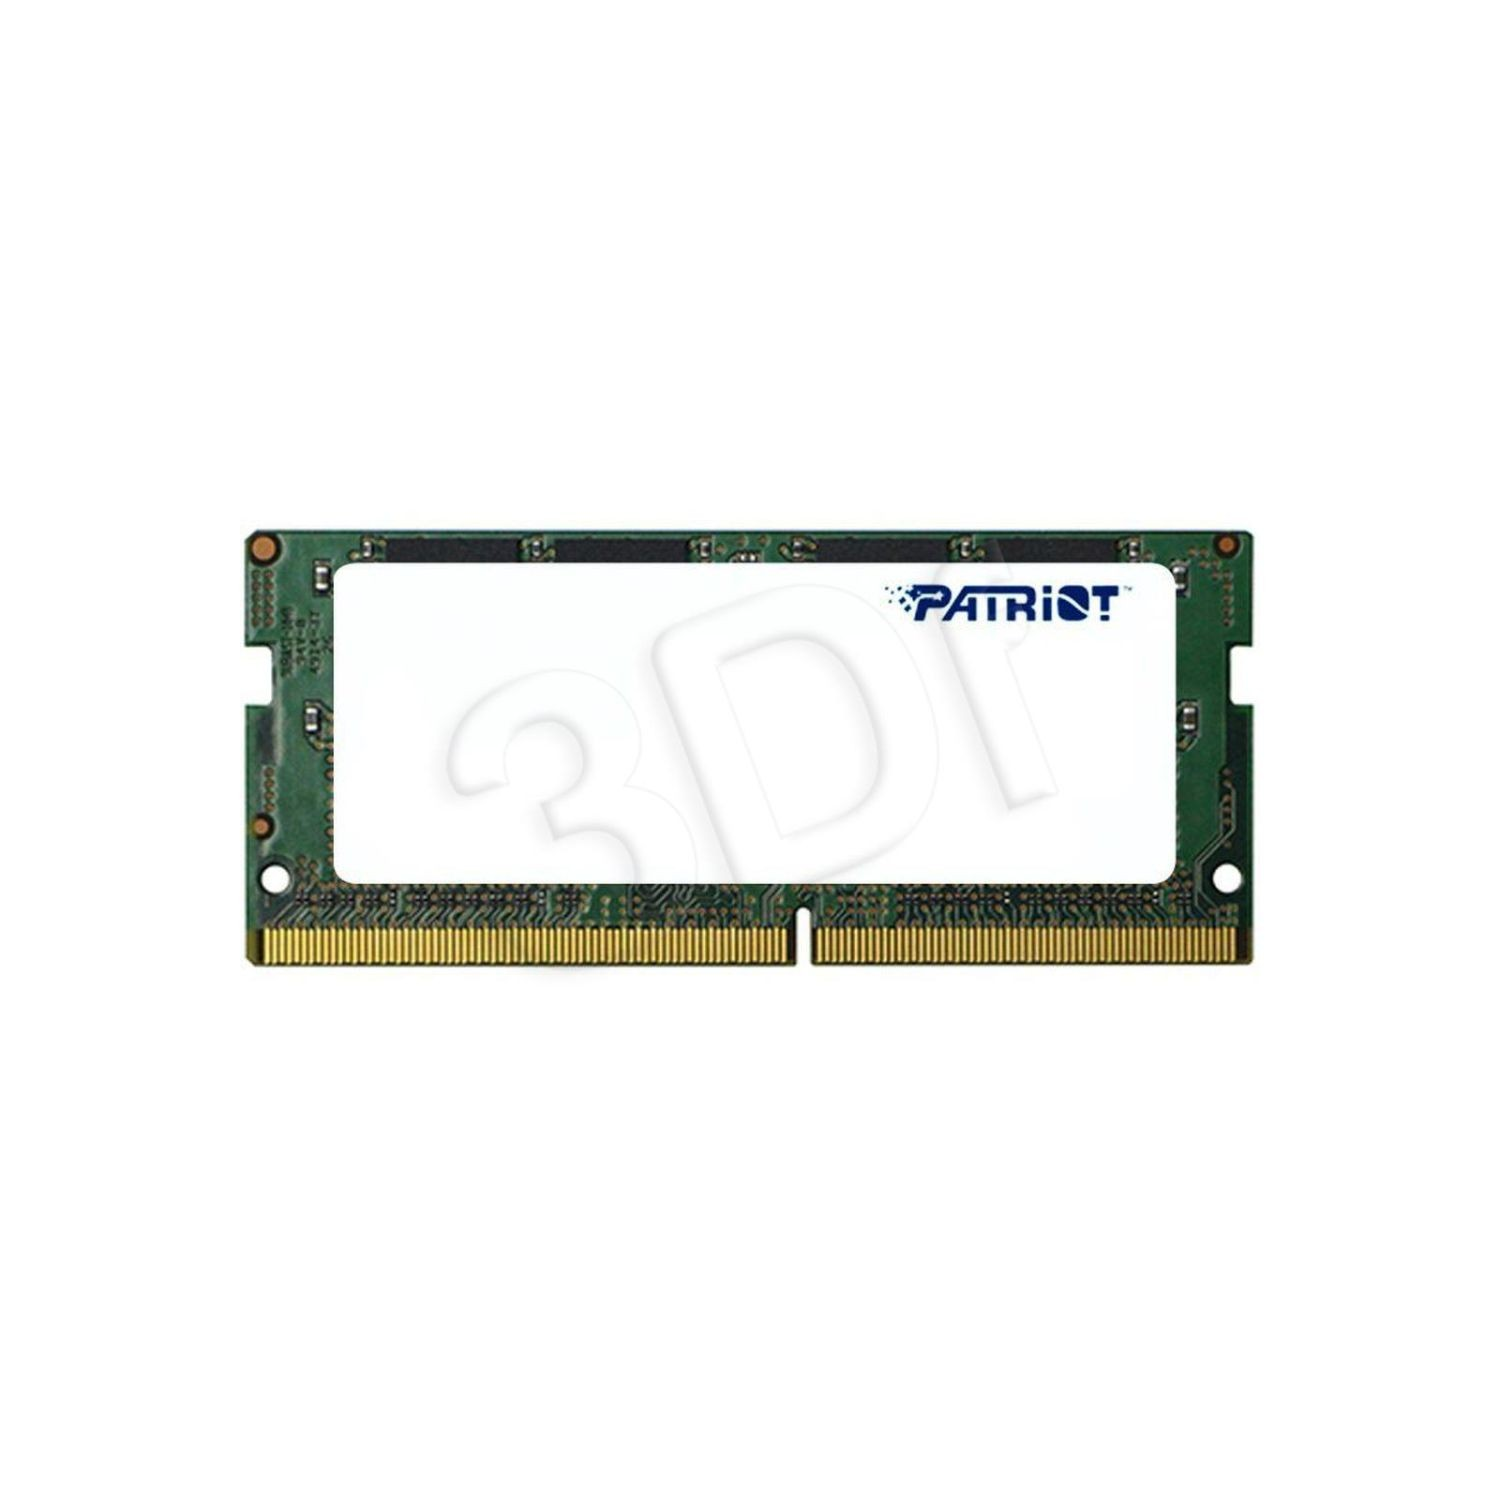 Patriot PSD48G240081S Signature DDR4 8GB 2400MHz CL17 SODIMM